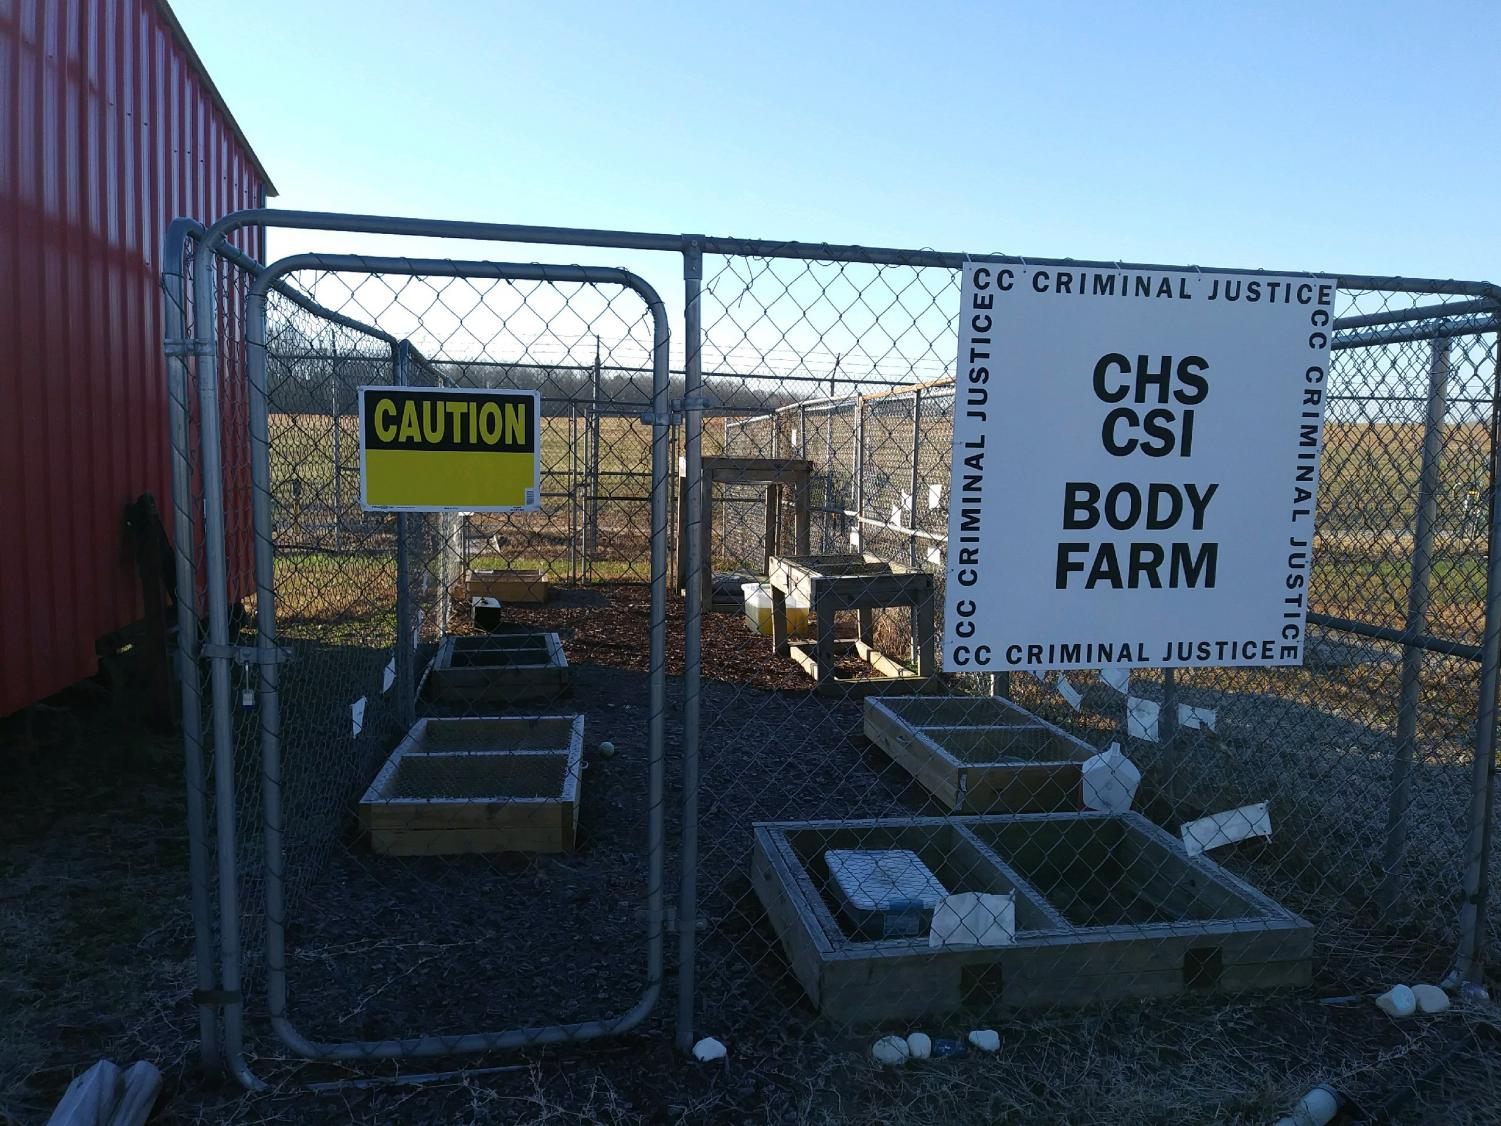 The CHS CSI Body Farm offers students the opportunity to prepare for future careers in law enforcement.